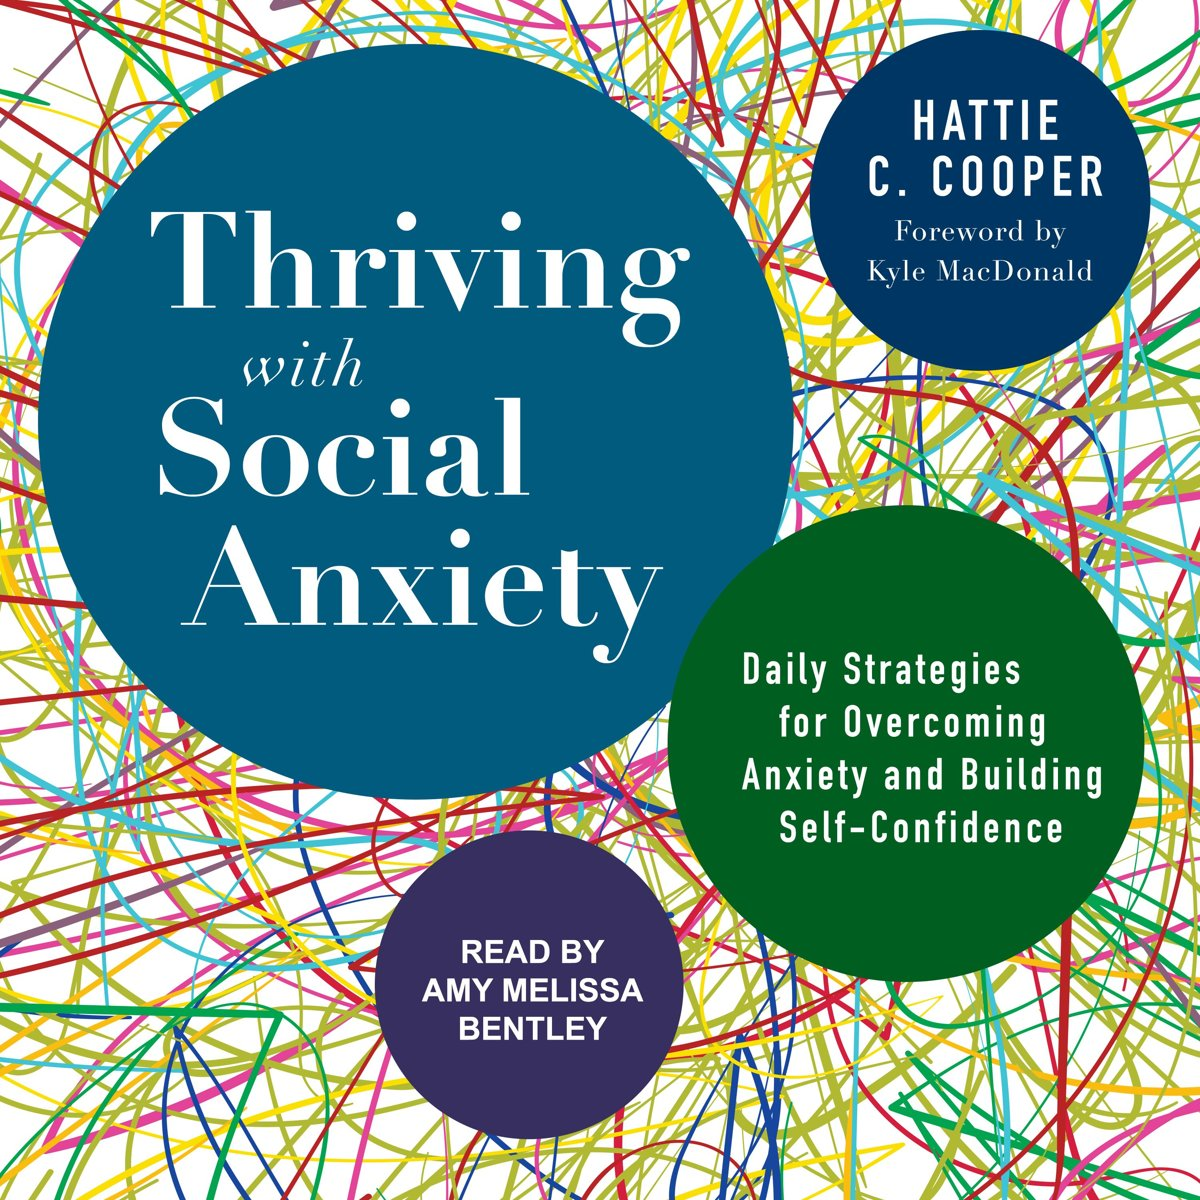 Thriving with Social Anxiety